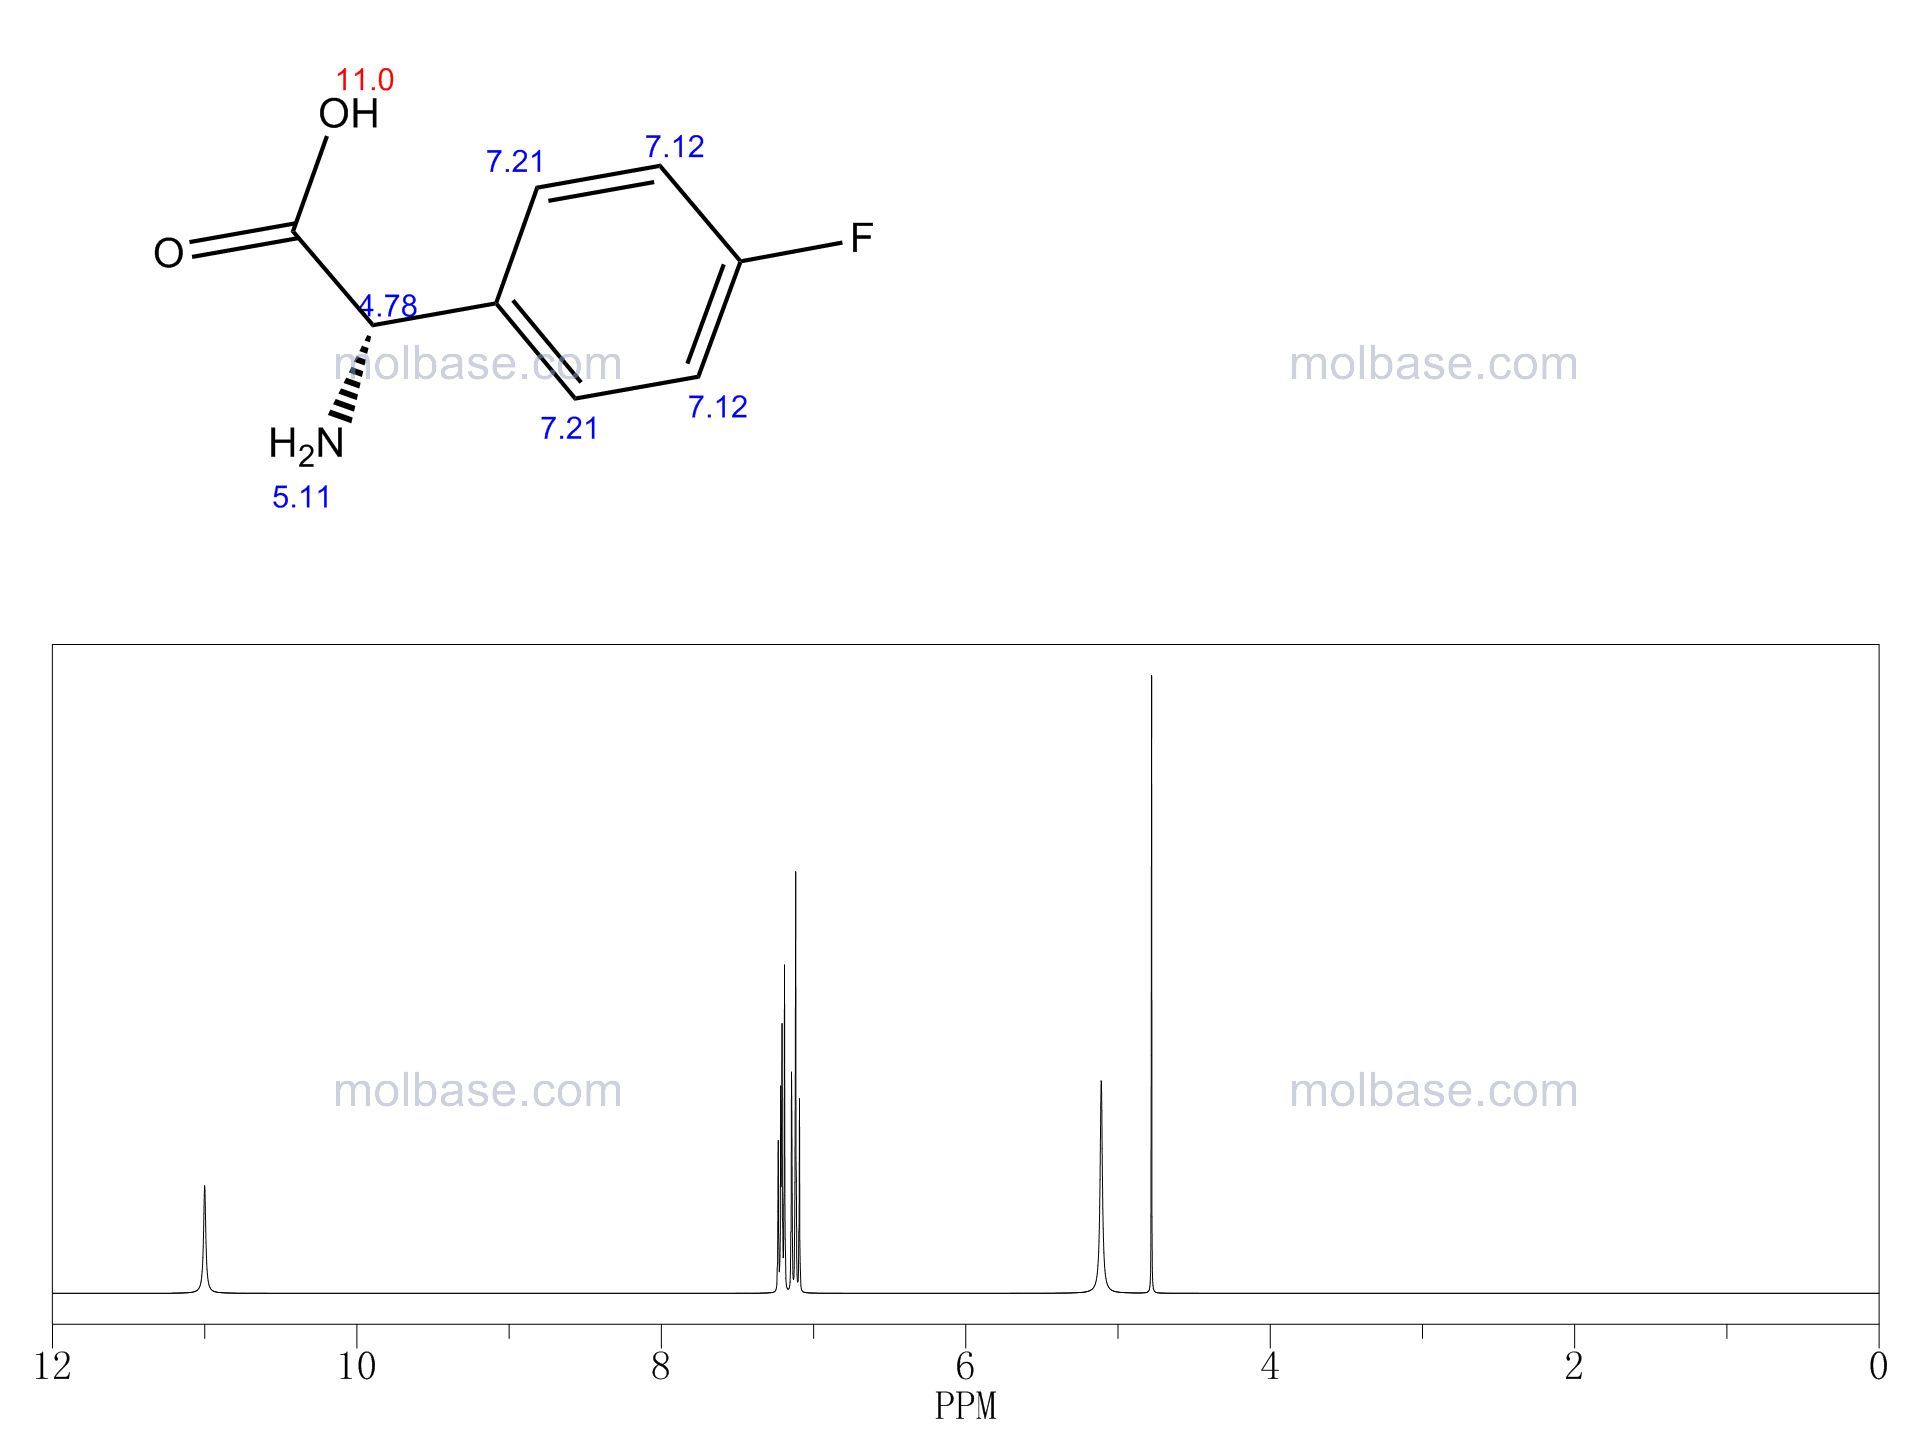 (R)-2-Amino-2-(4-fluorophenyl)acetic Acid NMR spectra analysis, Chemical CAS NO. 93939-74-3 NMR spectral analysis, (R)-2-Amino-2-(4-fluorophenyl)acetic Acid C-NMR spectrum